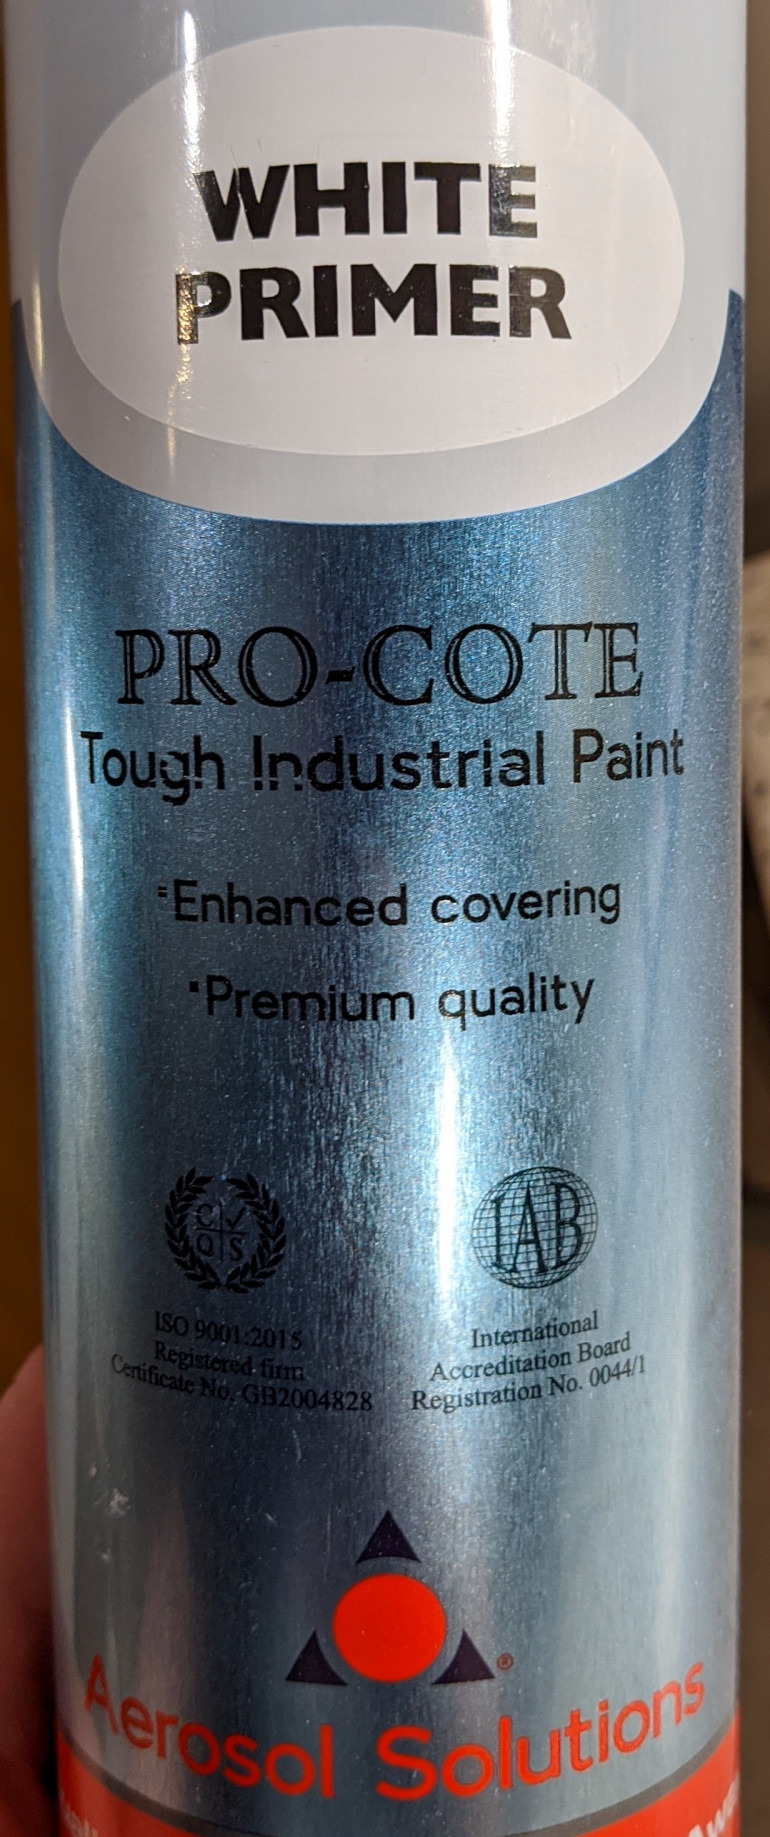 Toolstation's cheap primer - works really nicely in most conditions including cold, damp Scottish evenings in January